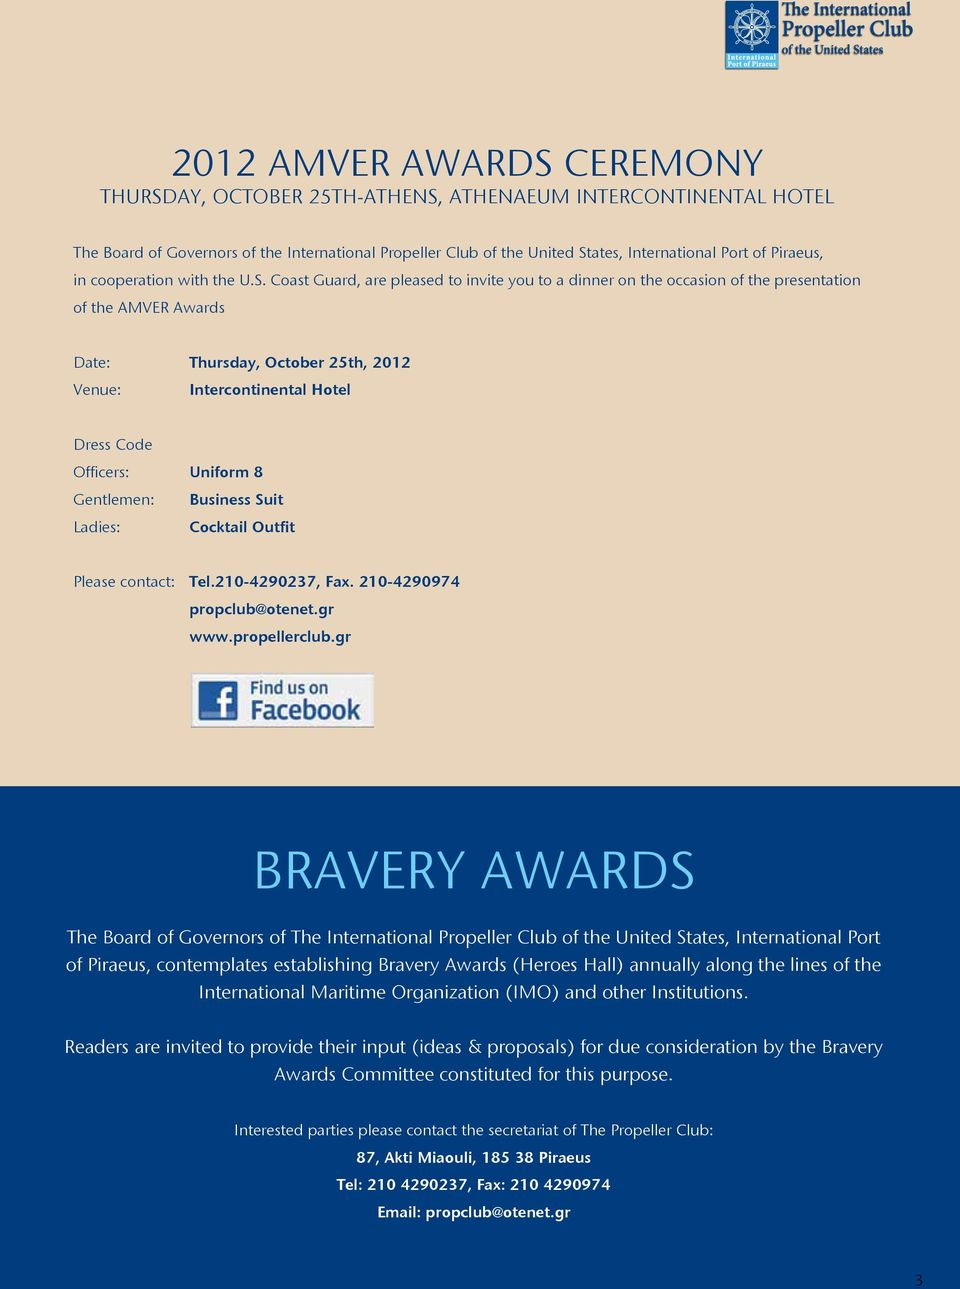 Coast Guard, are pleased to invite you to a dinner on the occasion of the presentation of the AMVER Awards Date: Thursday, October 25th, 2012 Venue: Intercontinental Hotel Dress Code Officers: